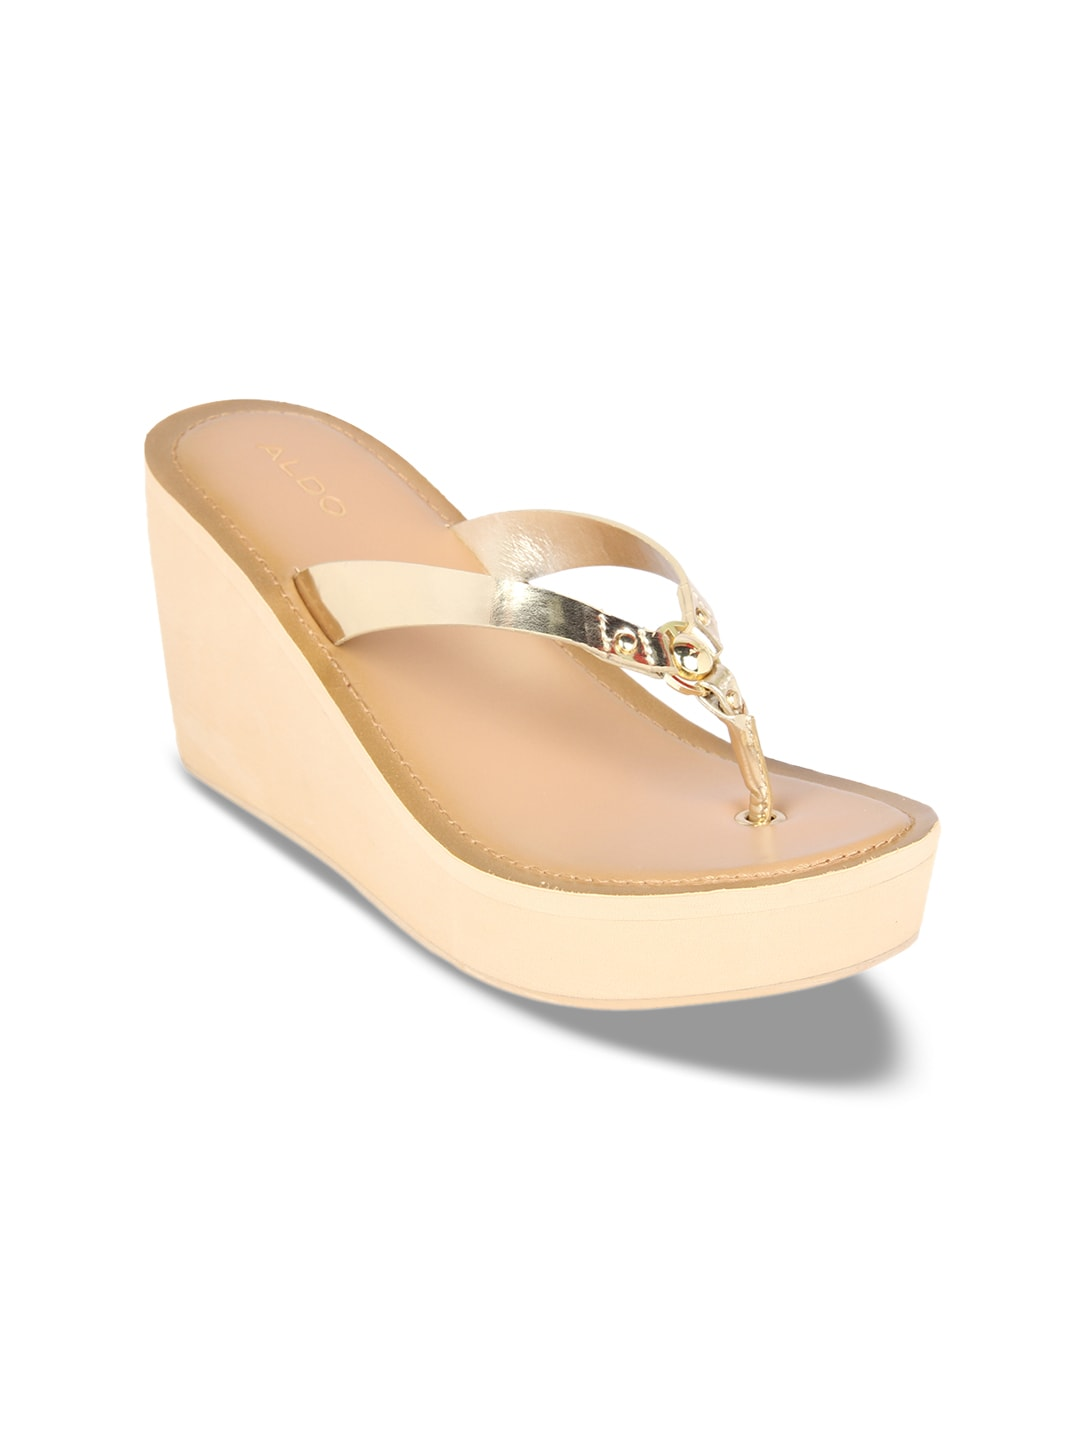 4697c2038ee ALDO Shoes - Buy Shoes from ALDO Online Store in India